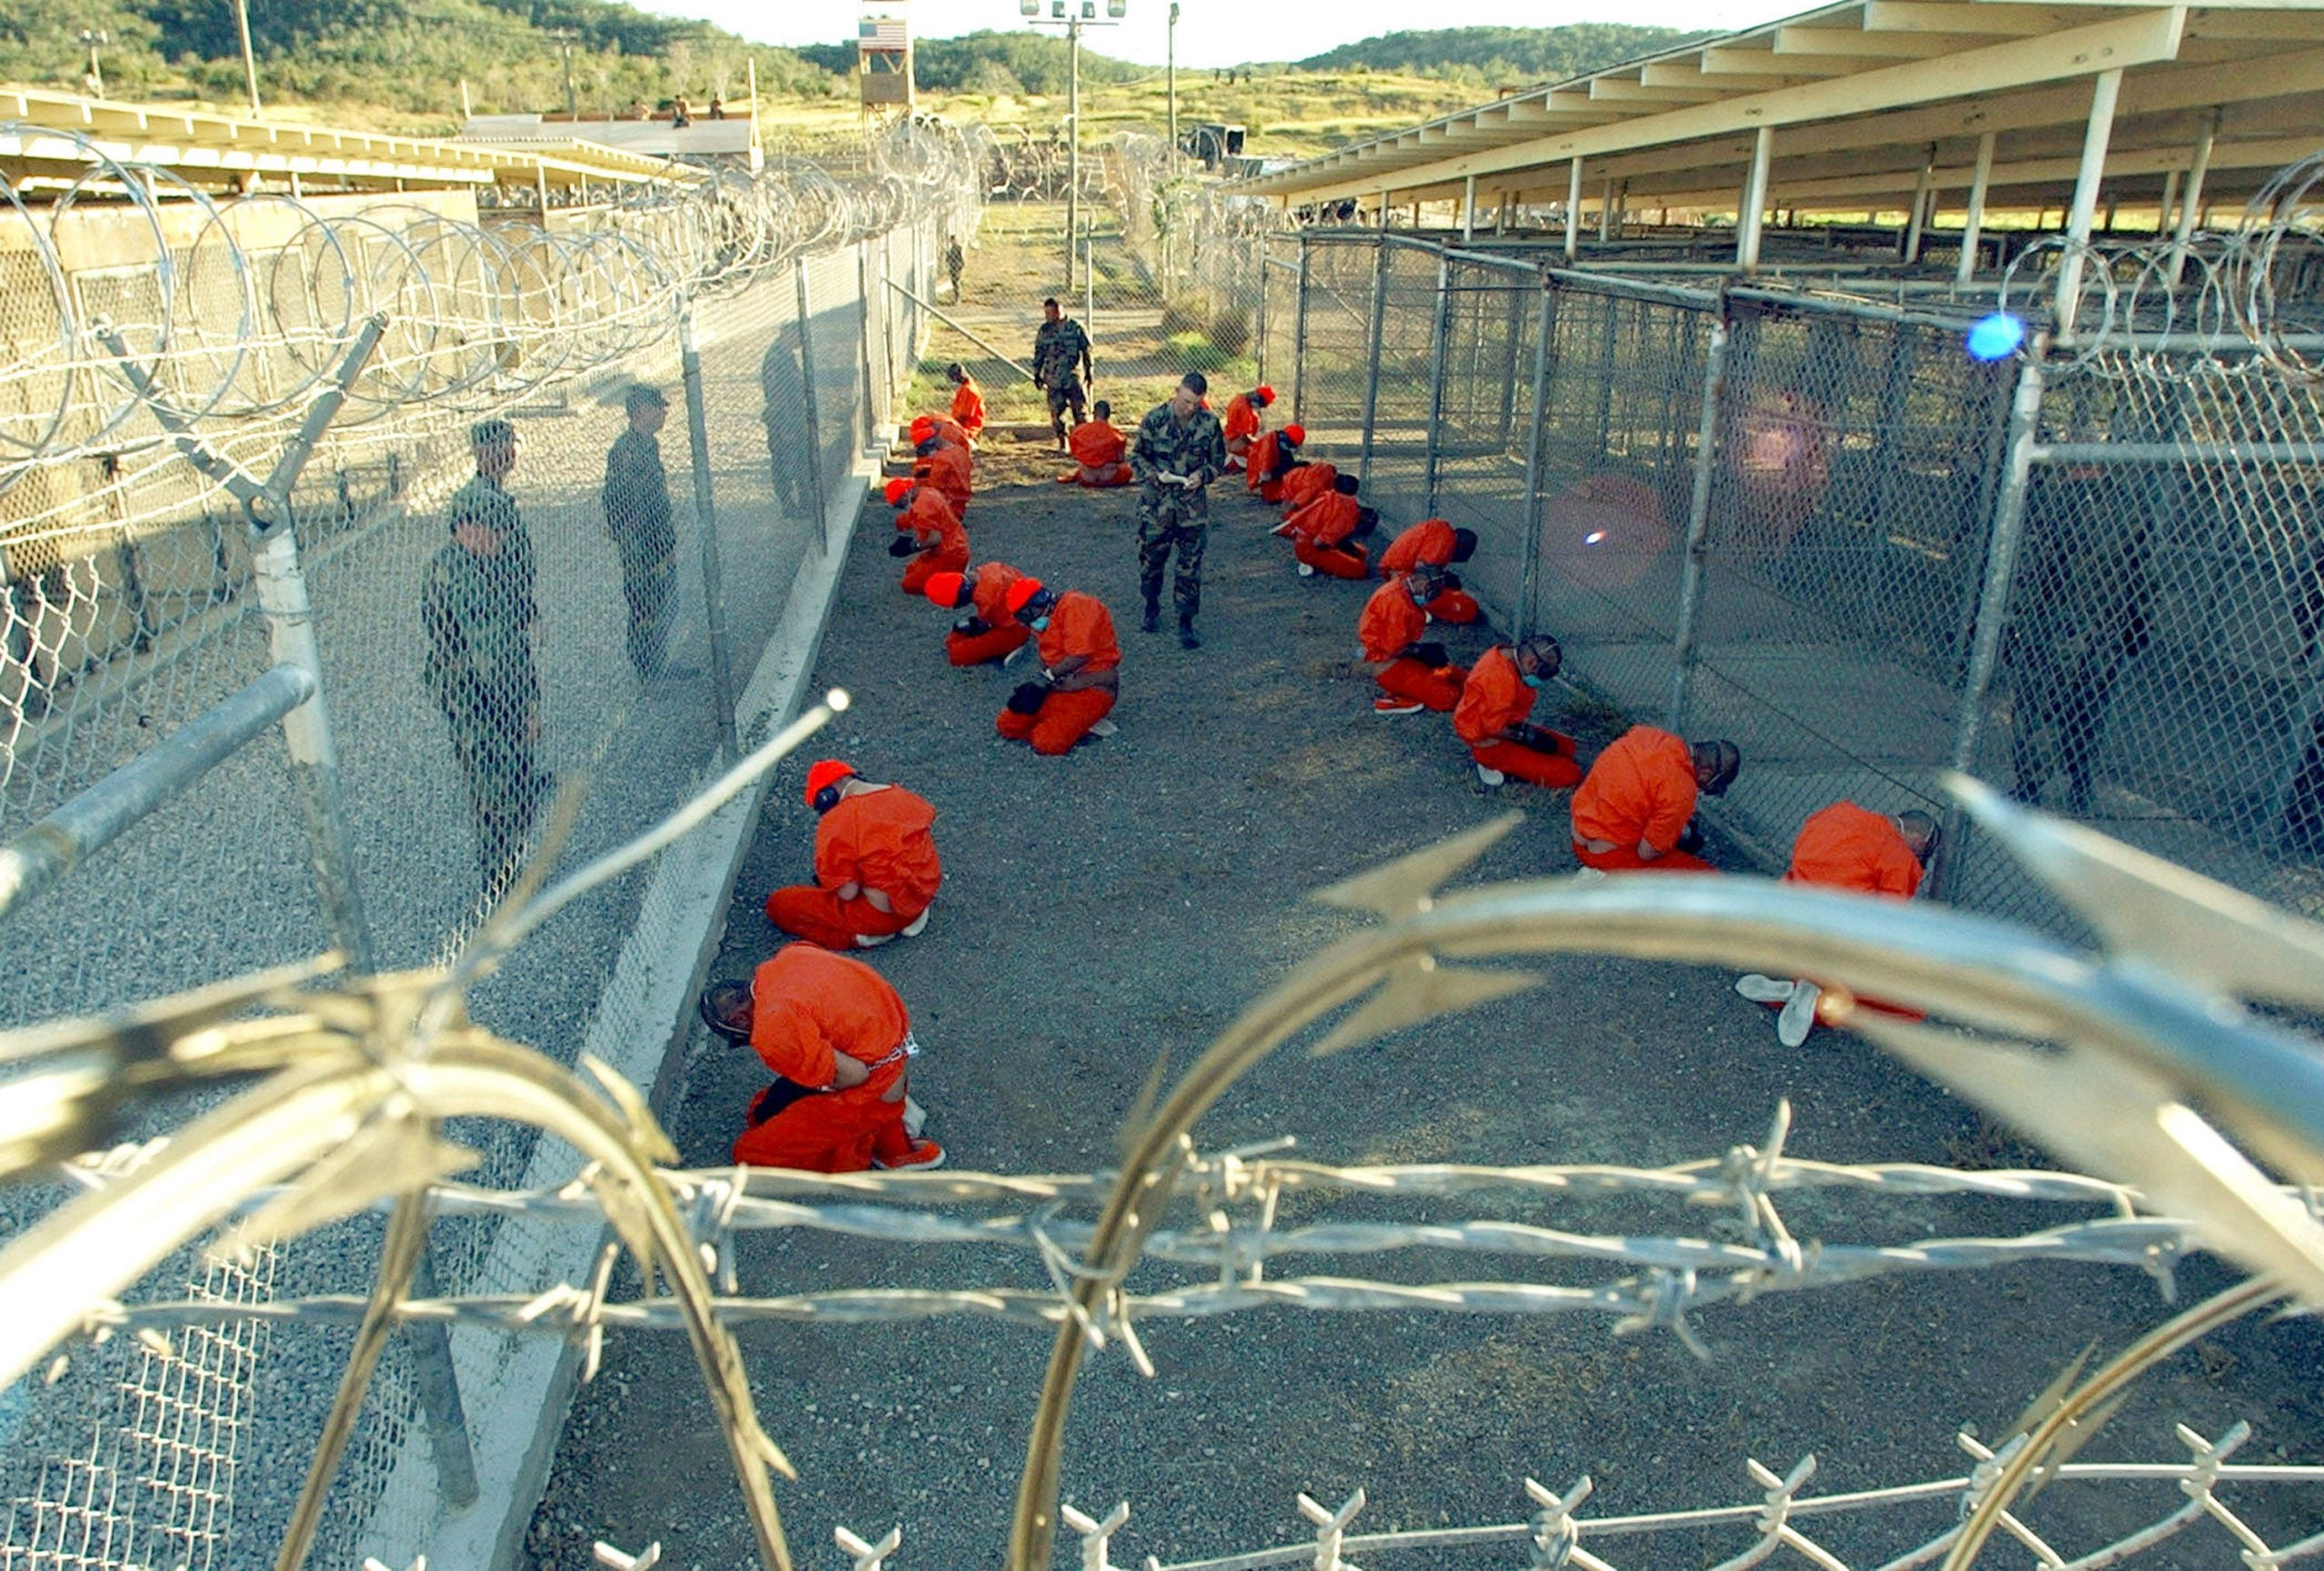 An extraordinary diary from Guantanamo Bay reveals the failure of American democracy